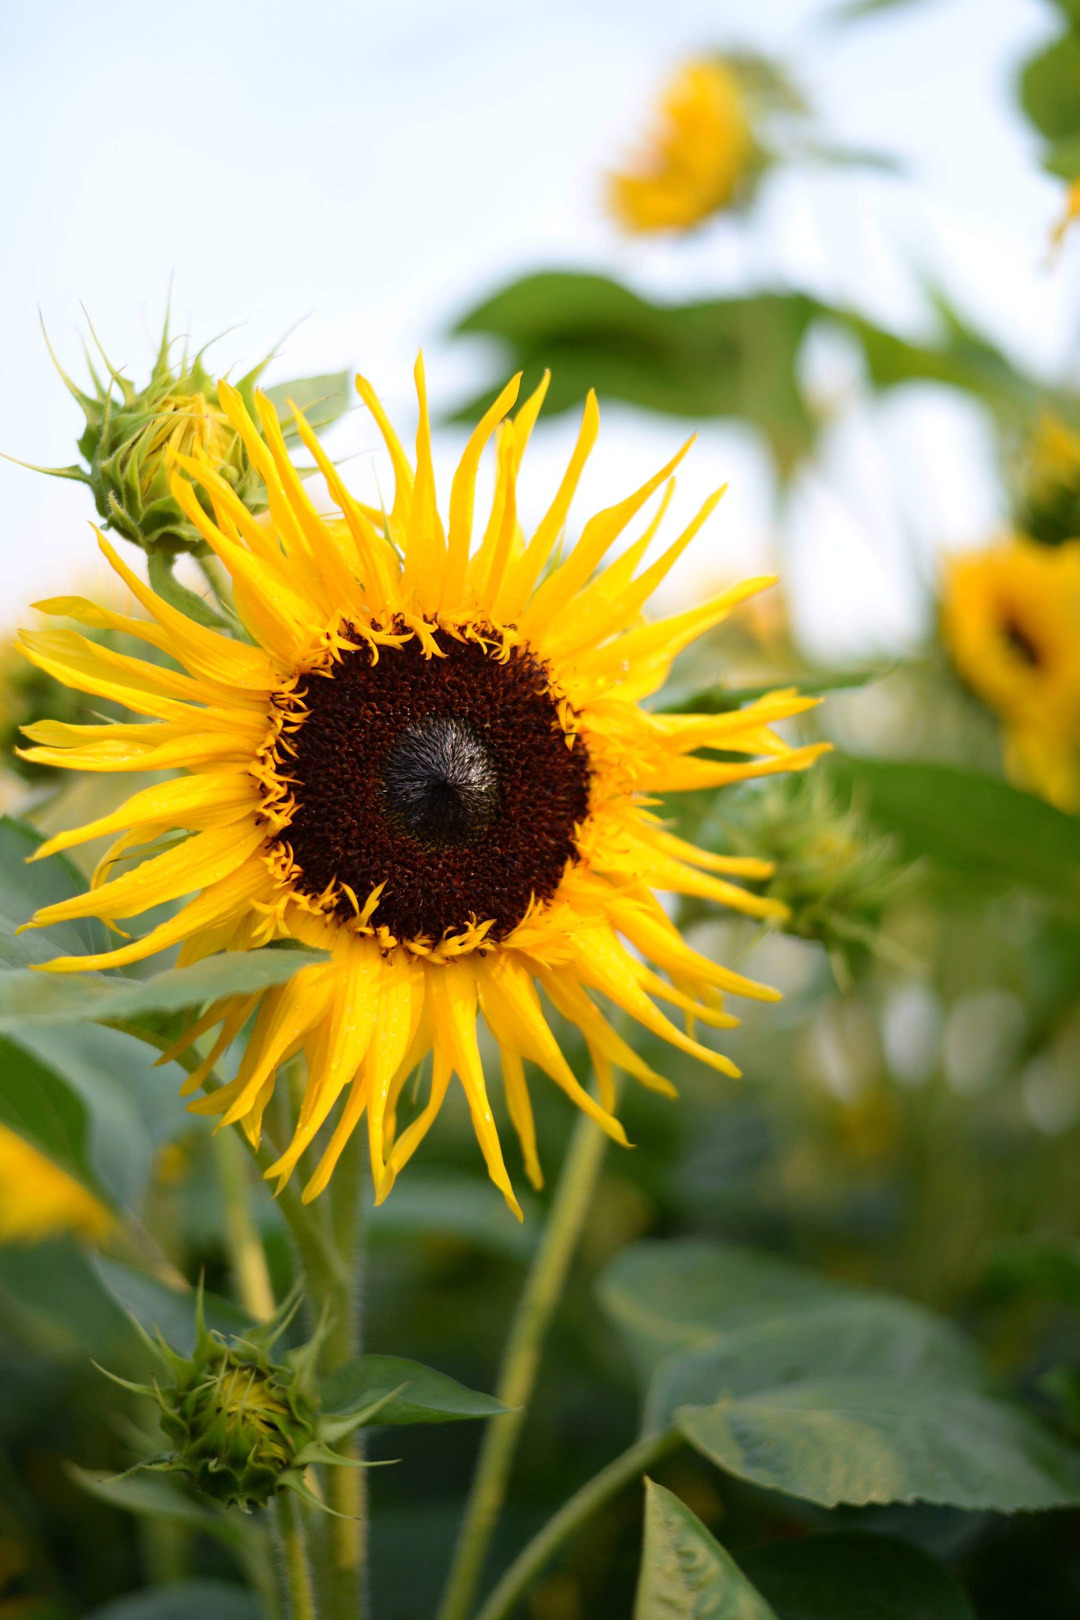 Sunflower with narrow petals